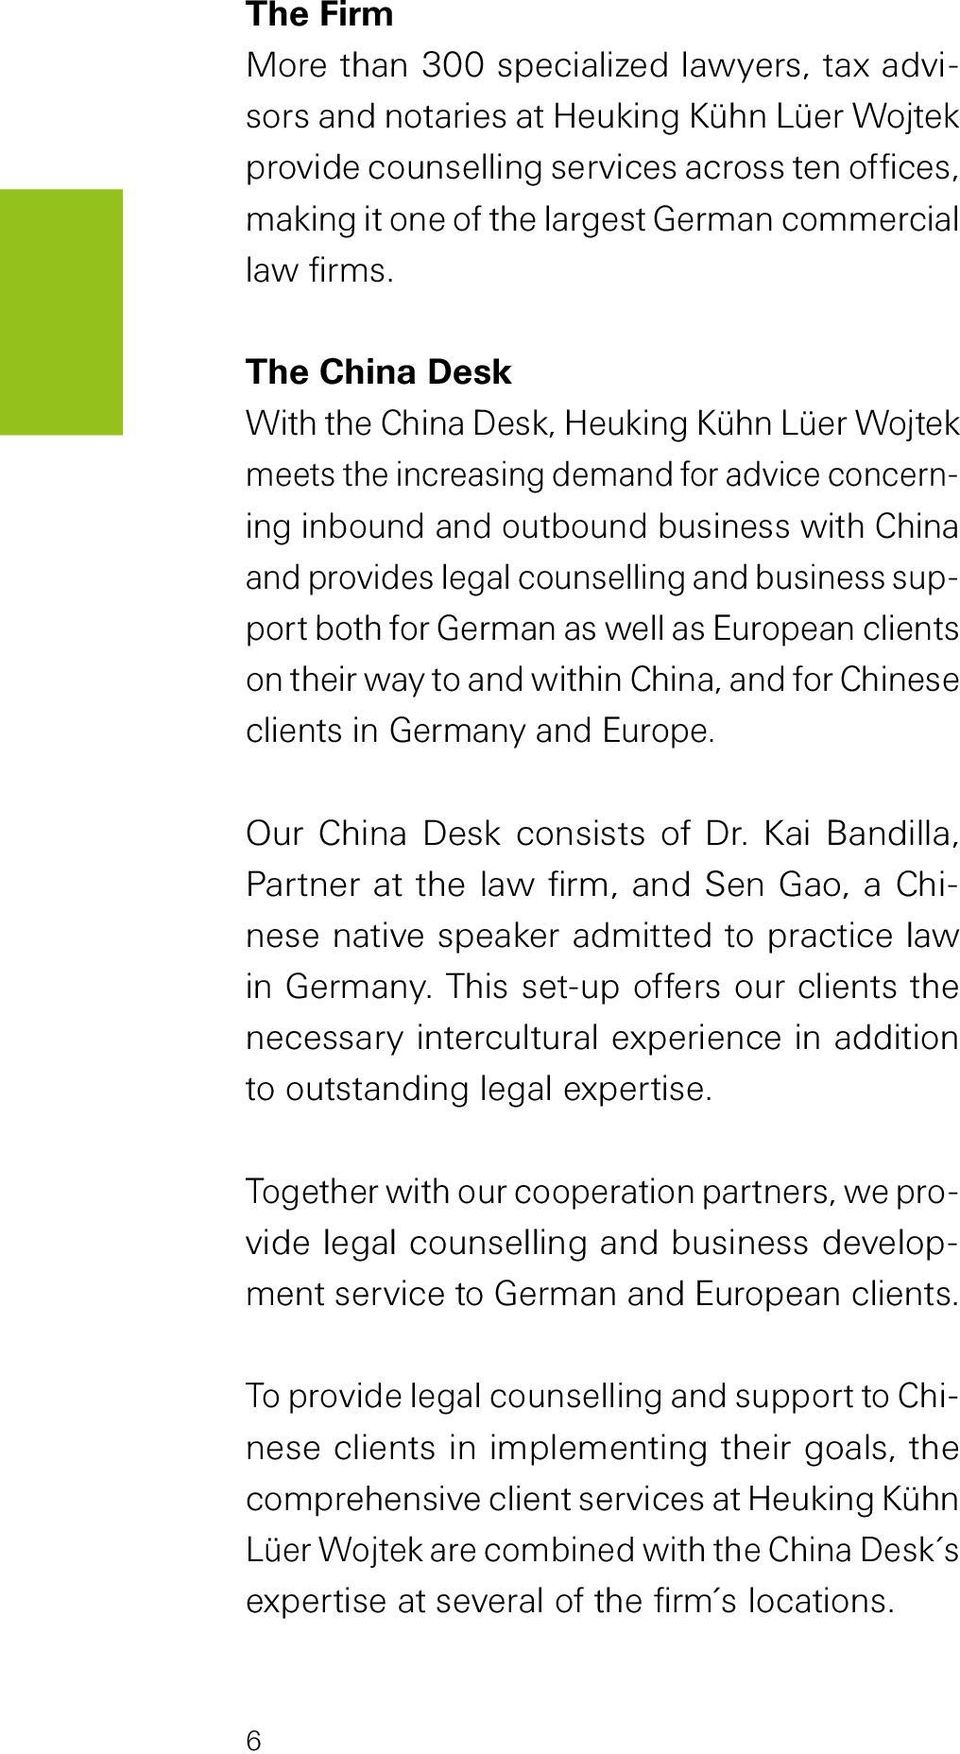 The China Desk With the China Desk, Heuking Kühn Lüer Wojtek meets the increasing demand for advice concerning inbound and outbound business with China and provides legal counselling and business